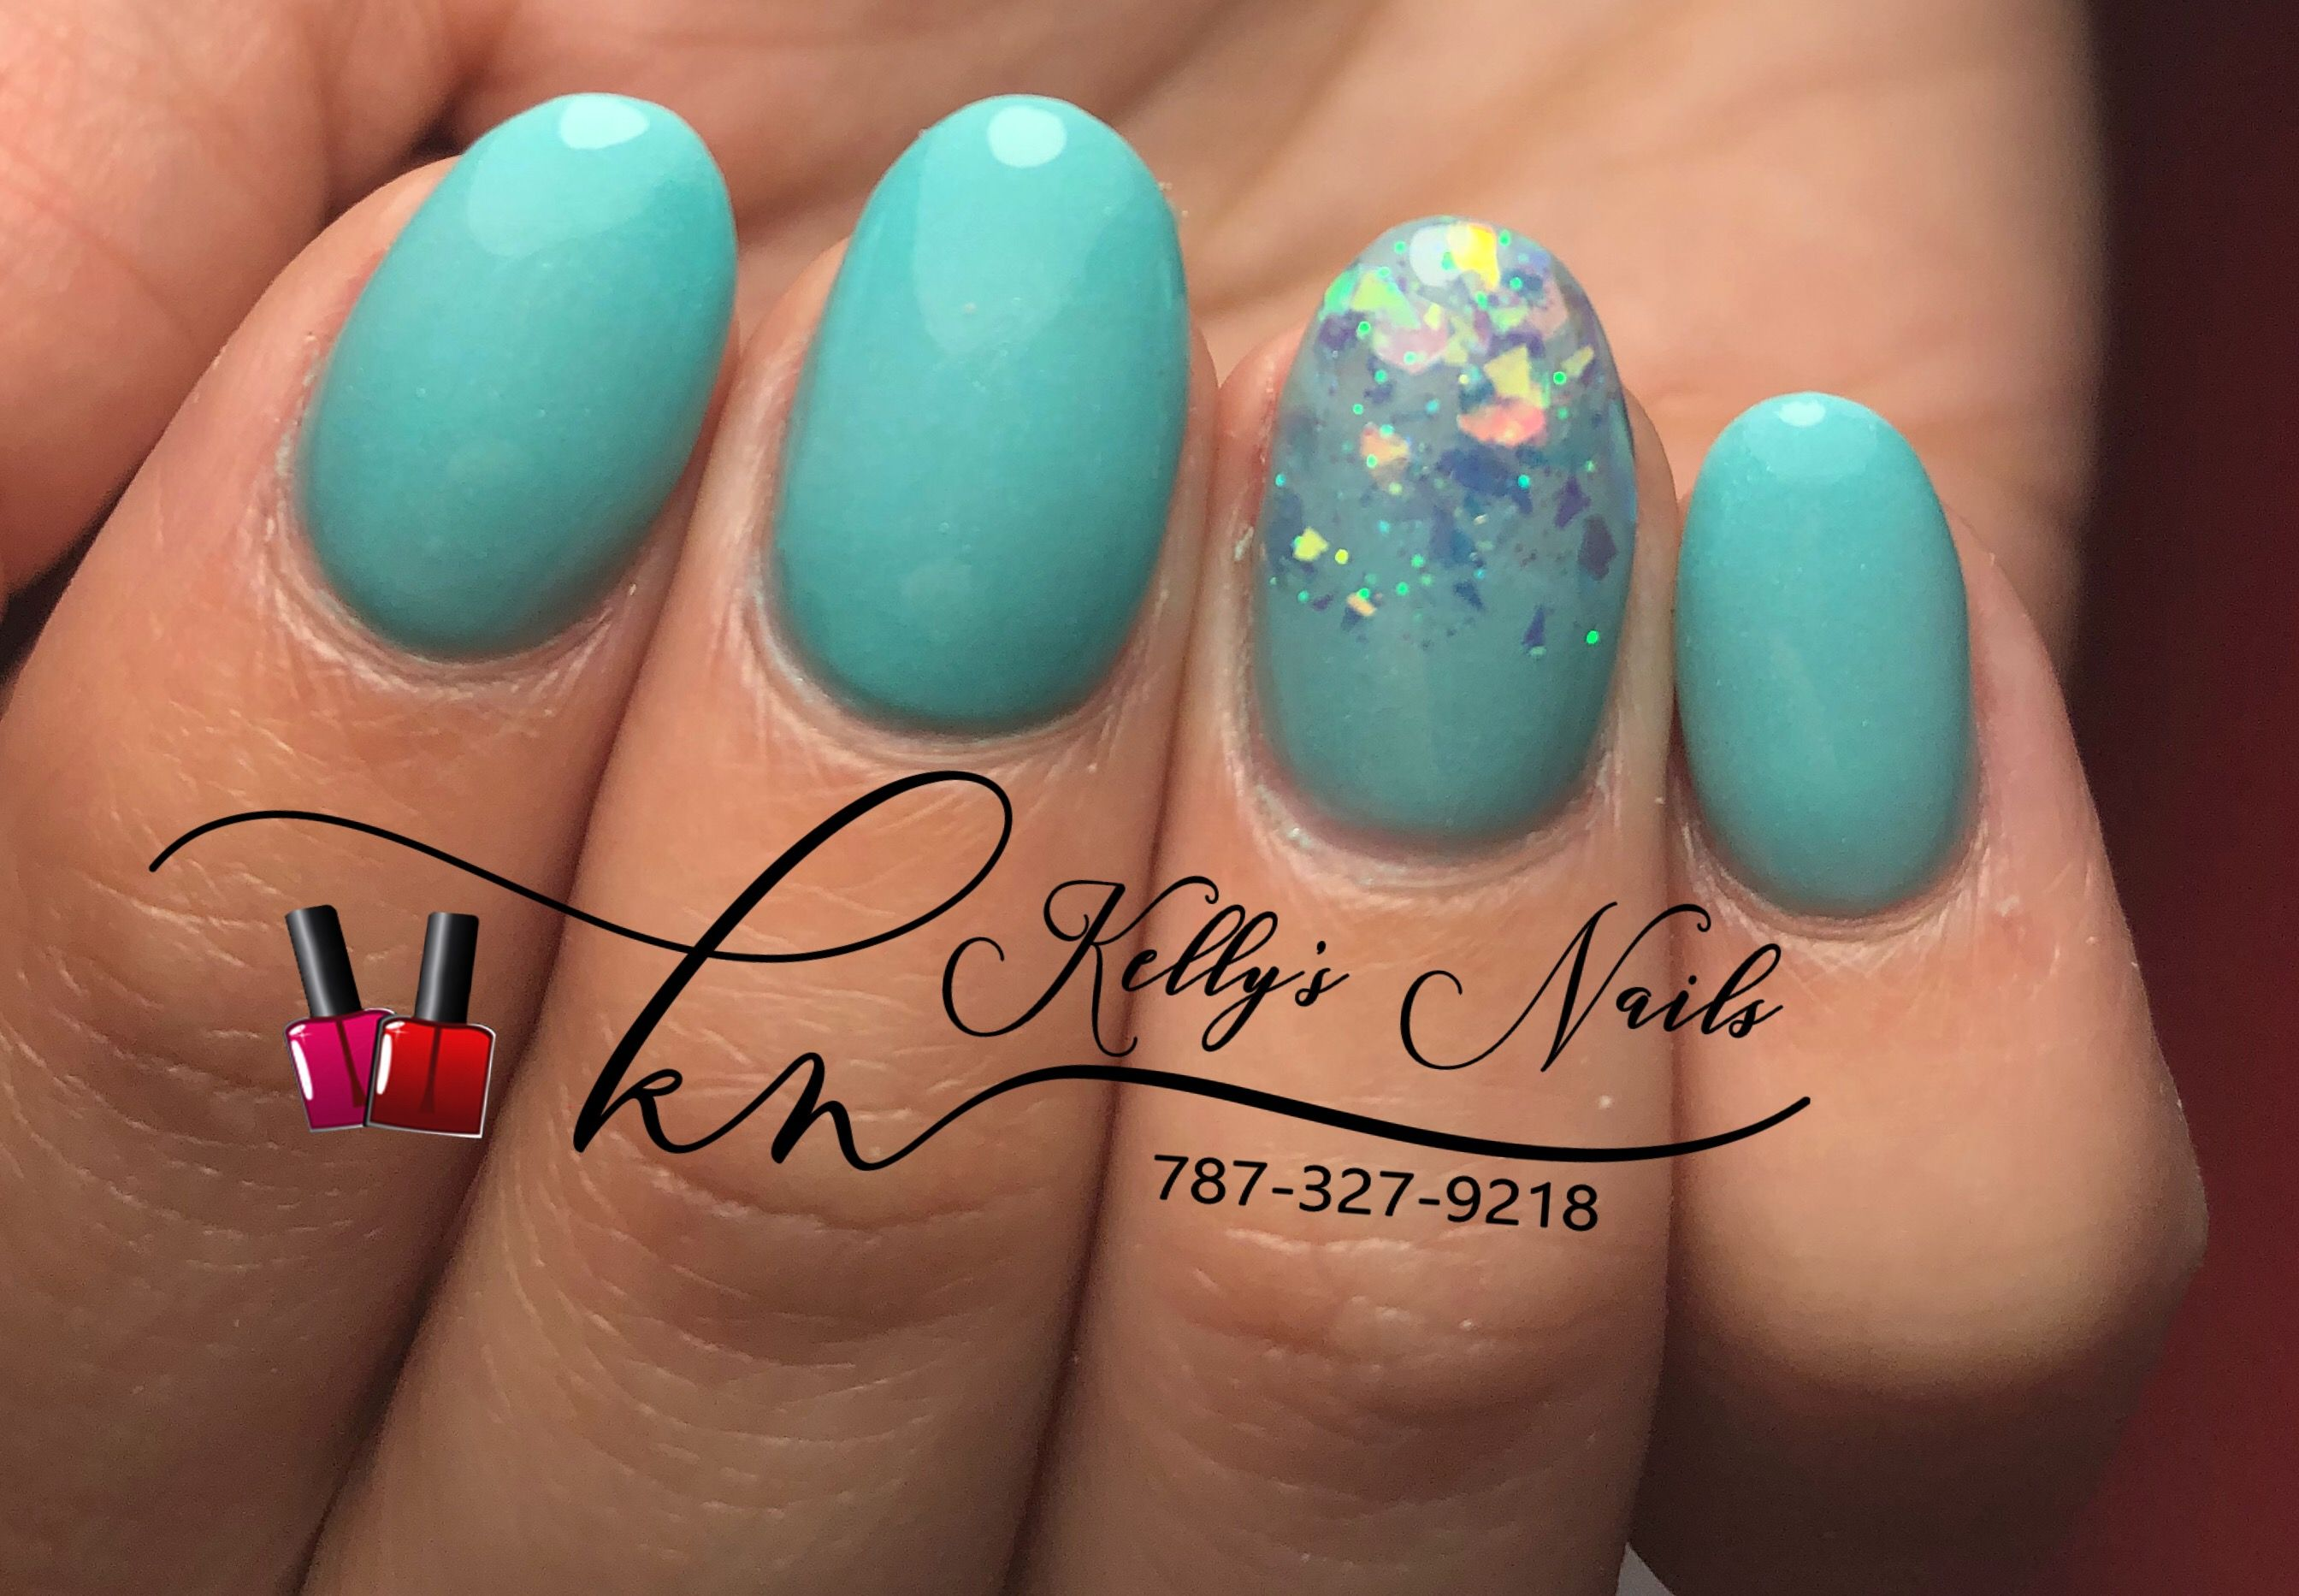 Pin by Kelly Lopez on Nails by Kelly   Nails, Cute nail